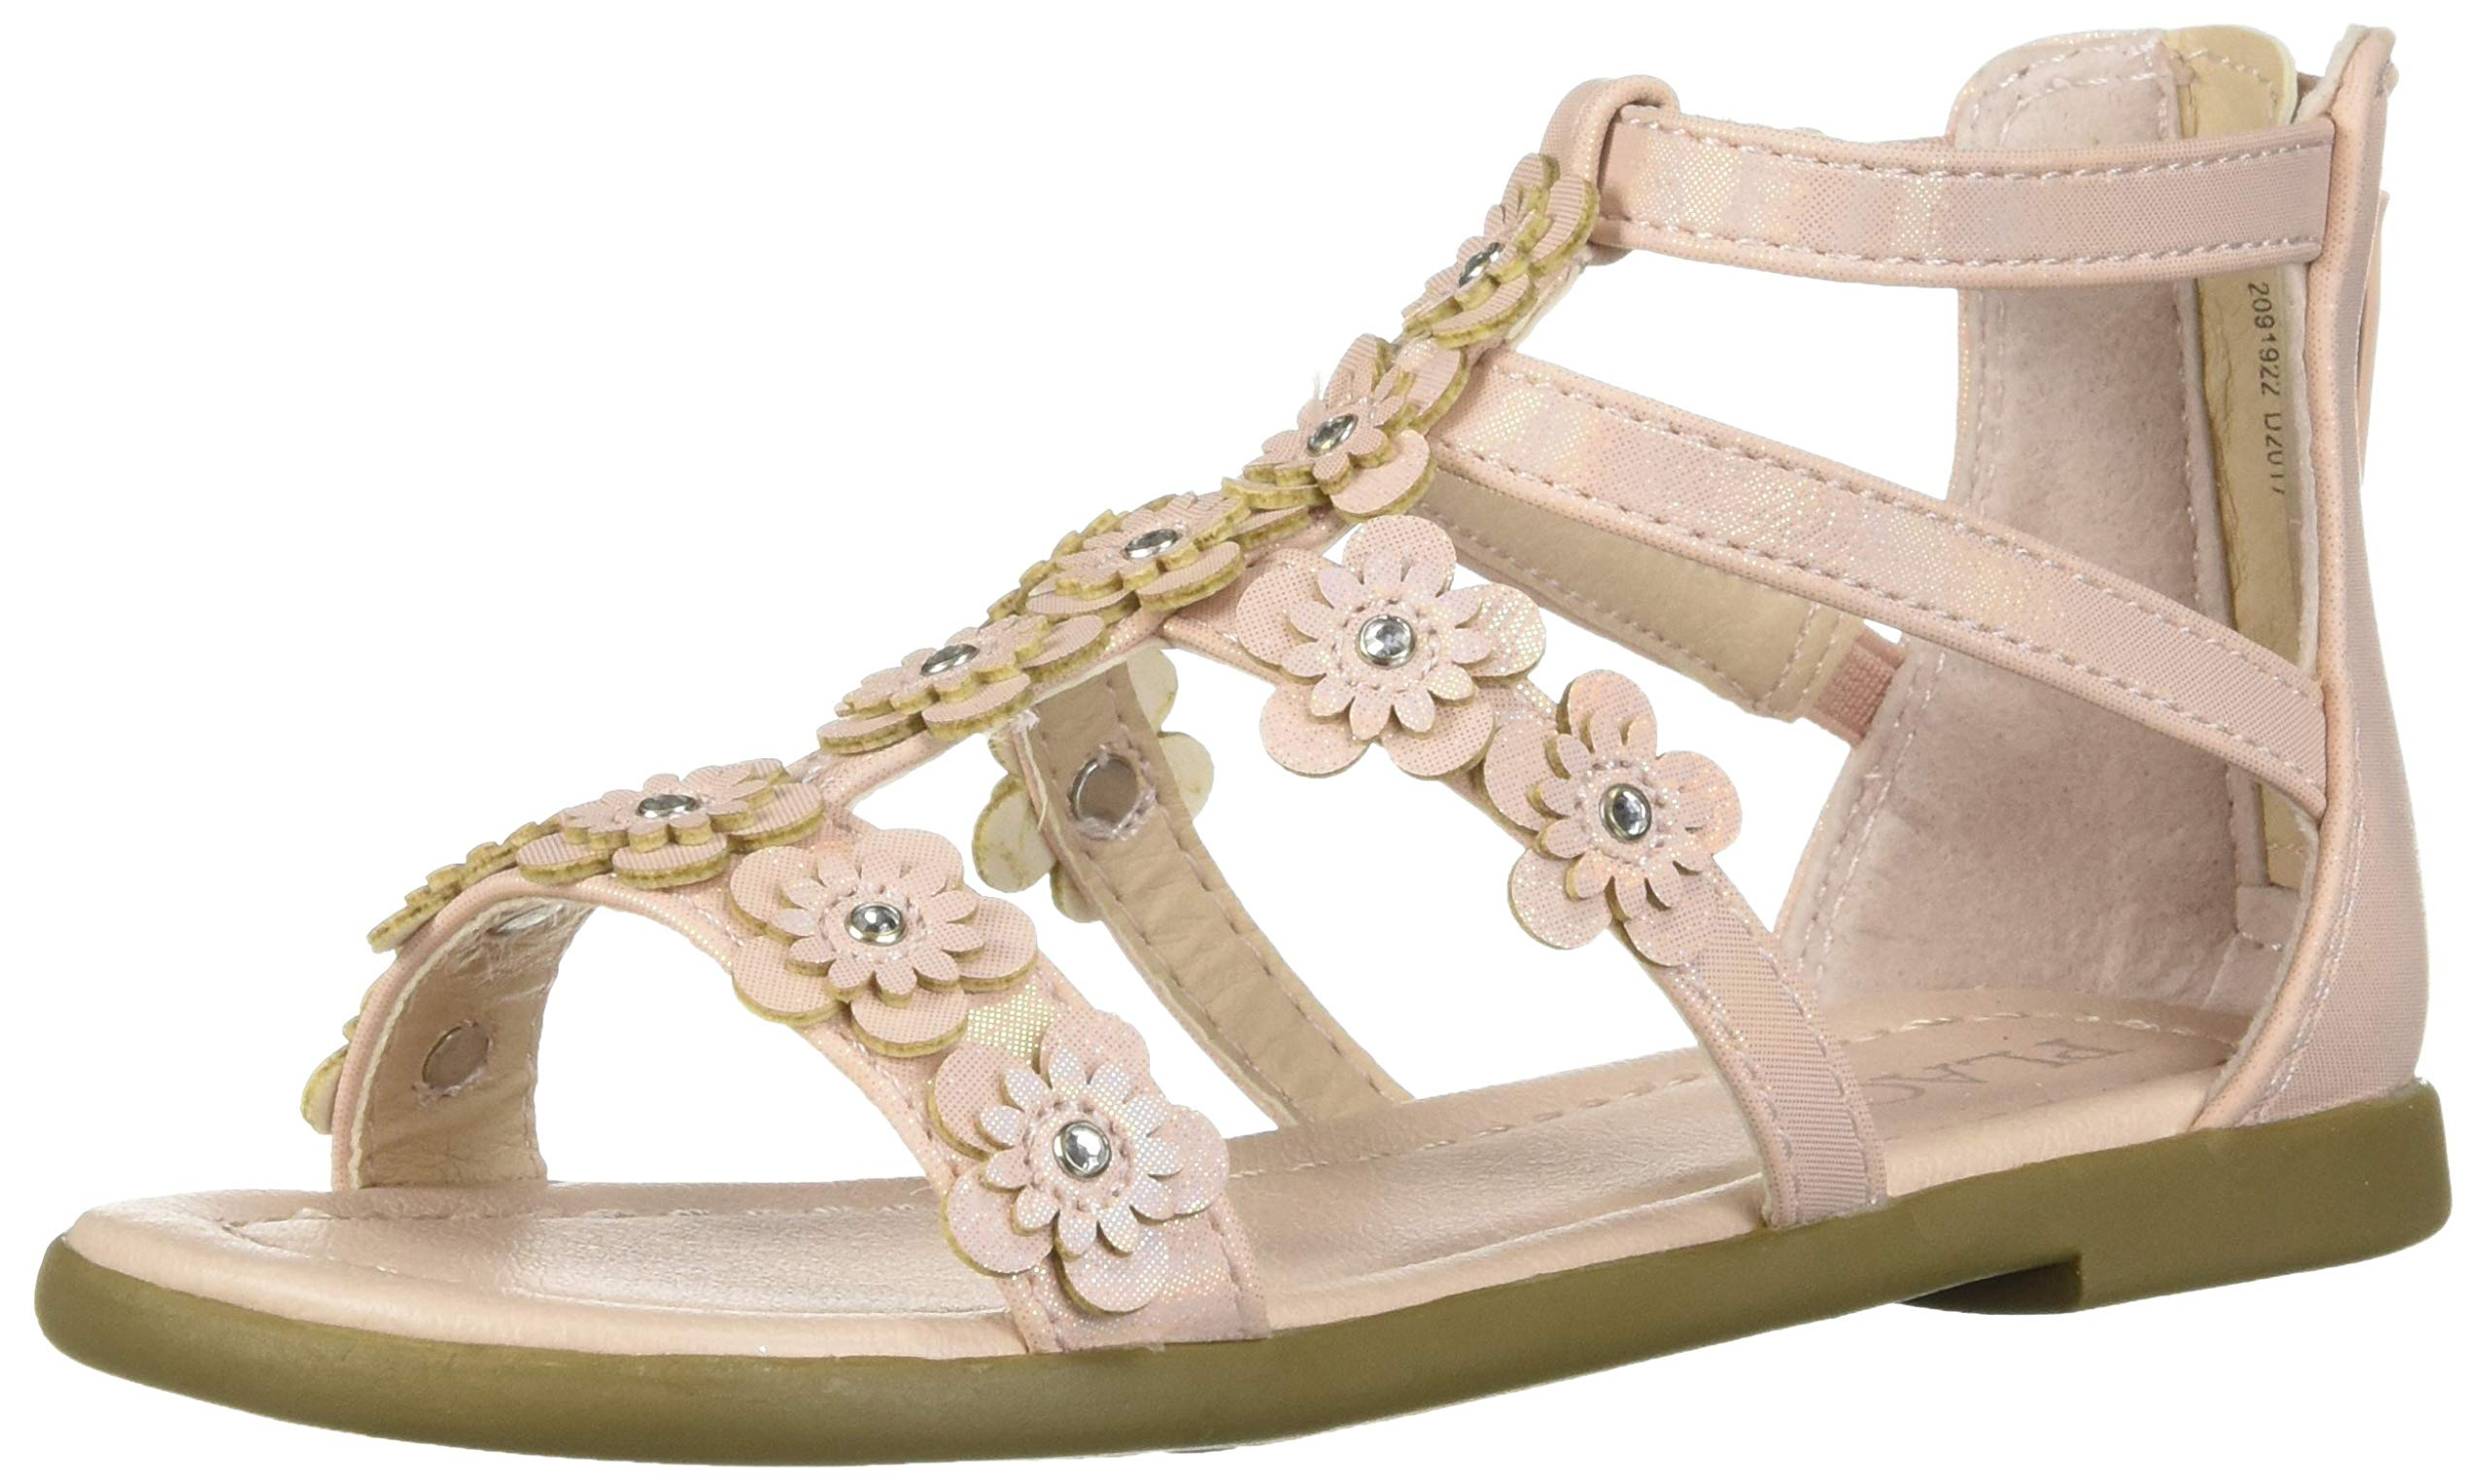 The Children's Place Girls' Sandal, Pink, Youth 5